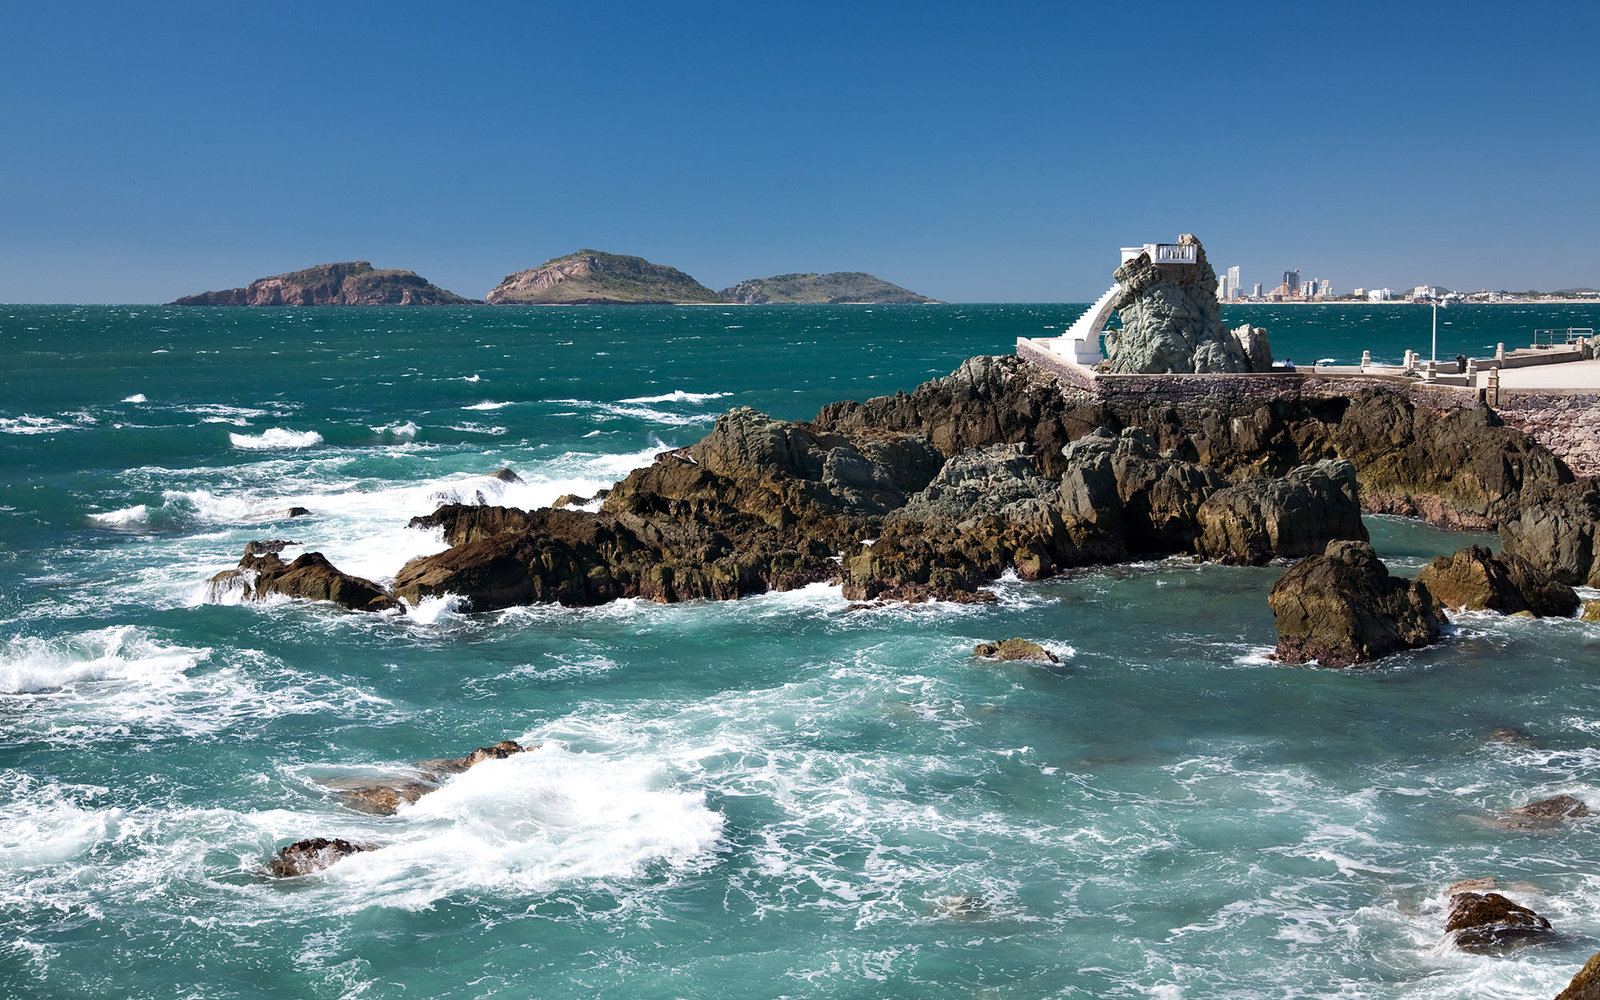 Lookout in Mazatlan Mexico